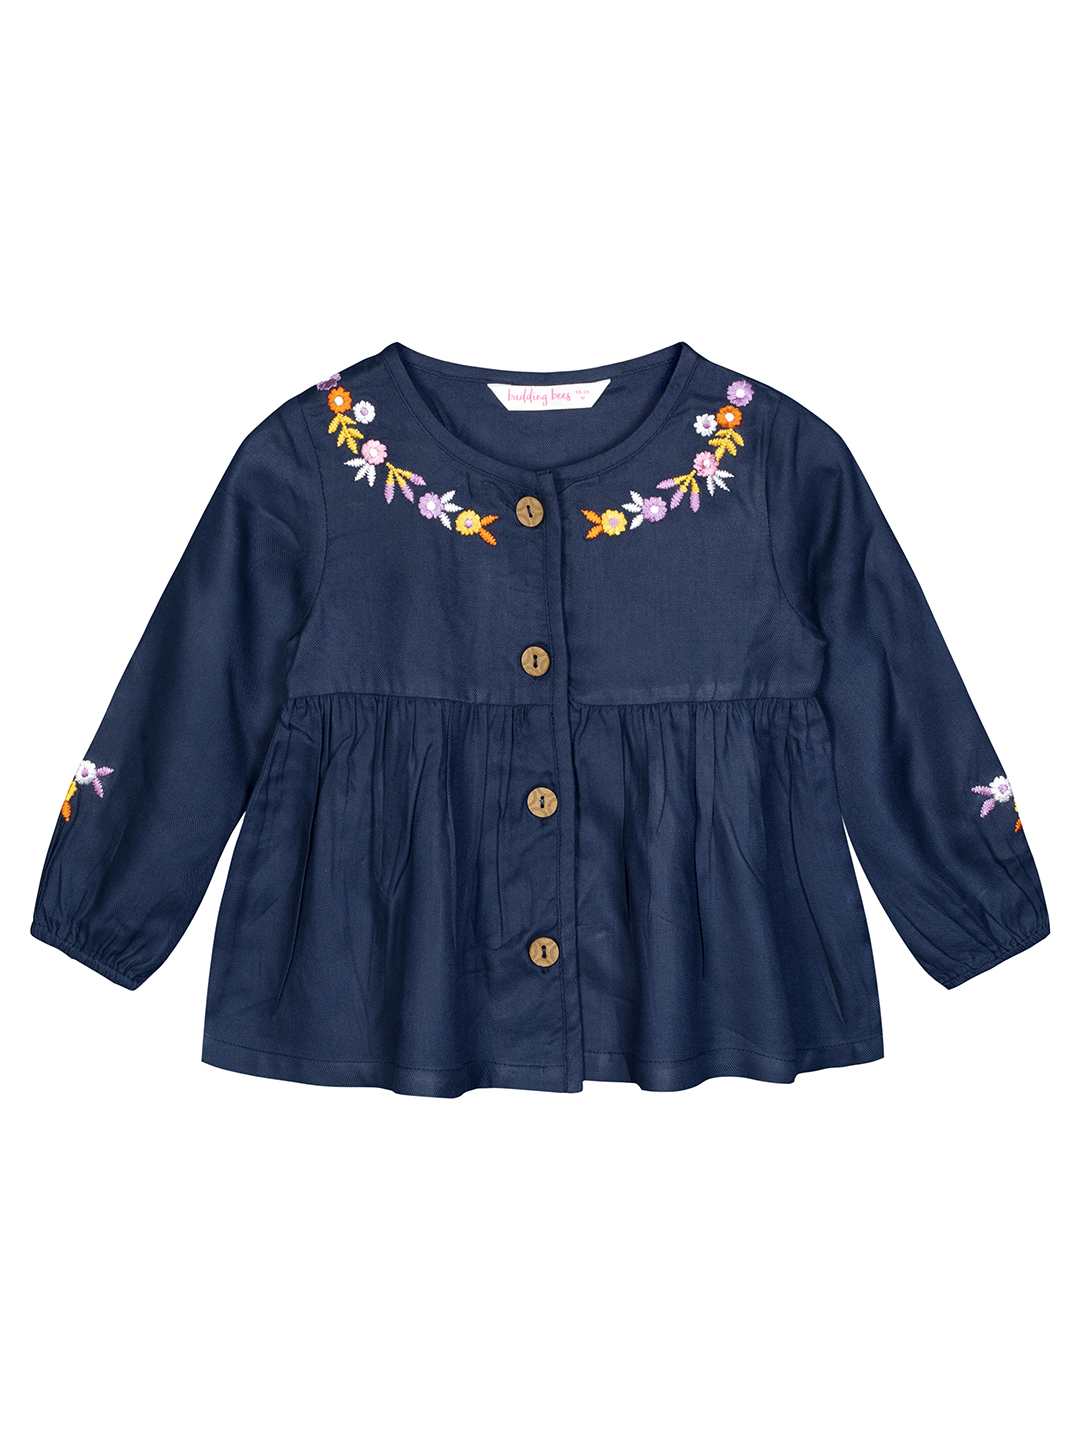 Budding Bees | Budding Bees Baby Girls Blue Embroidered Top